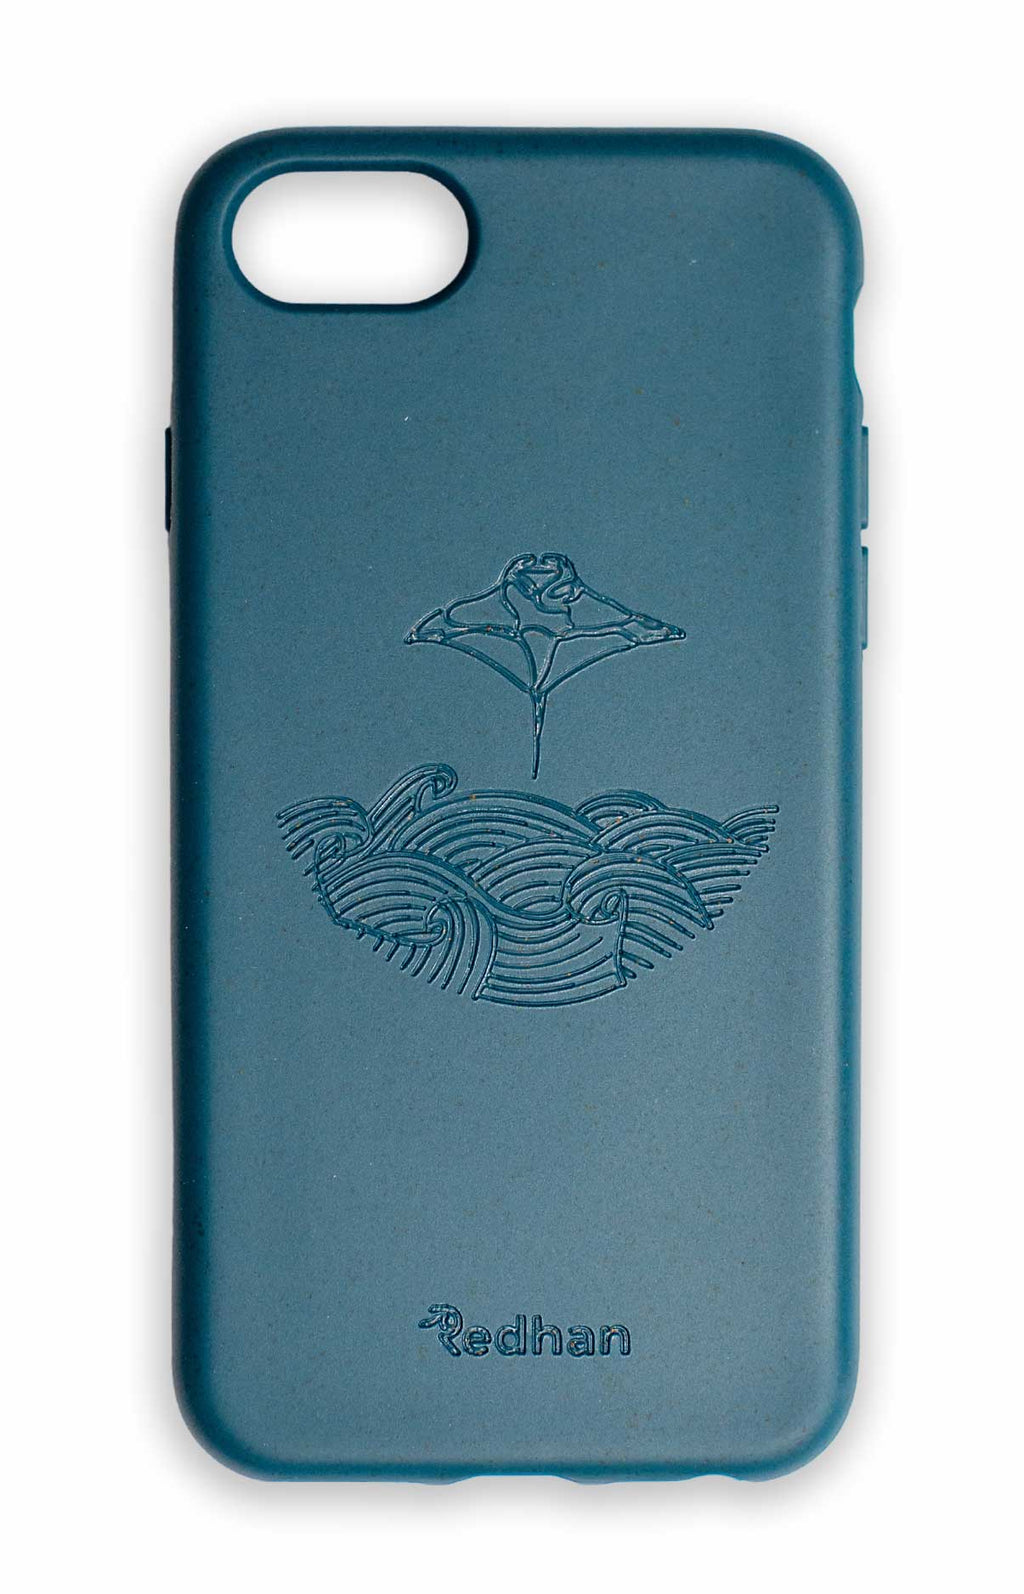 Manta Ray in Blue Navy - iPhone 6/6S/7/8/SE(2° Gen)